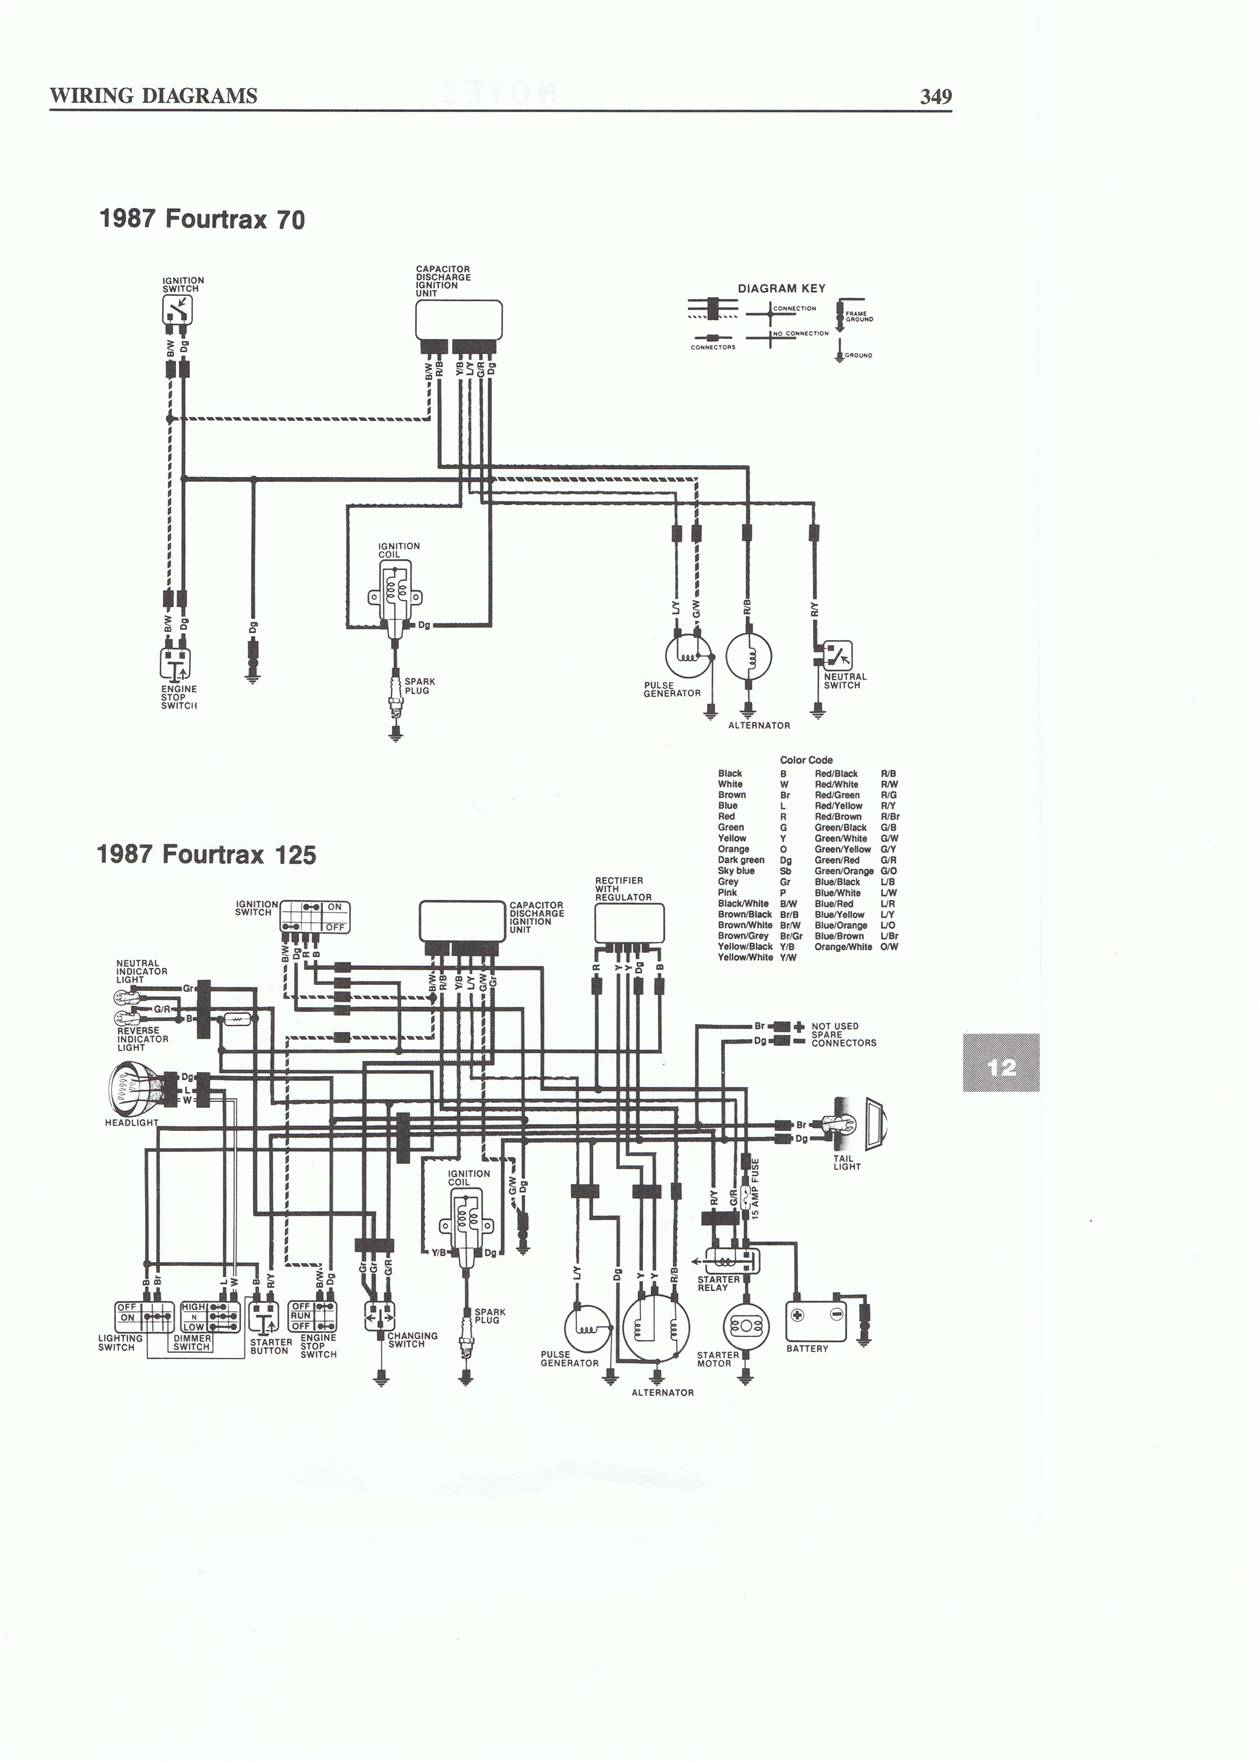 wiring diagram gy6 150cc free wiring diagram for you u2022 gy6 parts diagram gy6 90cc wiring diagram [ 1260 x 1762 Pixel ]